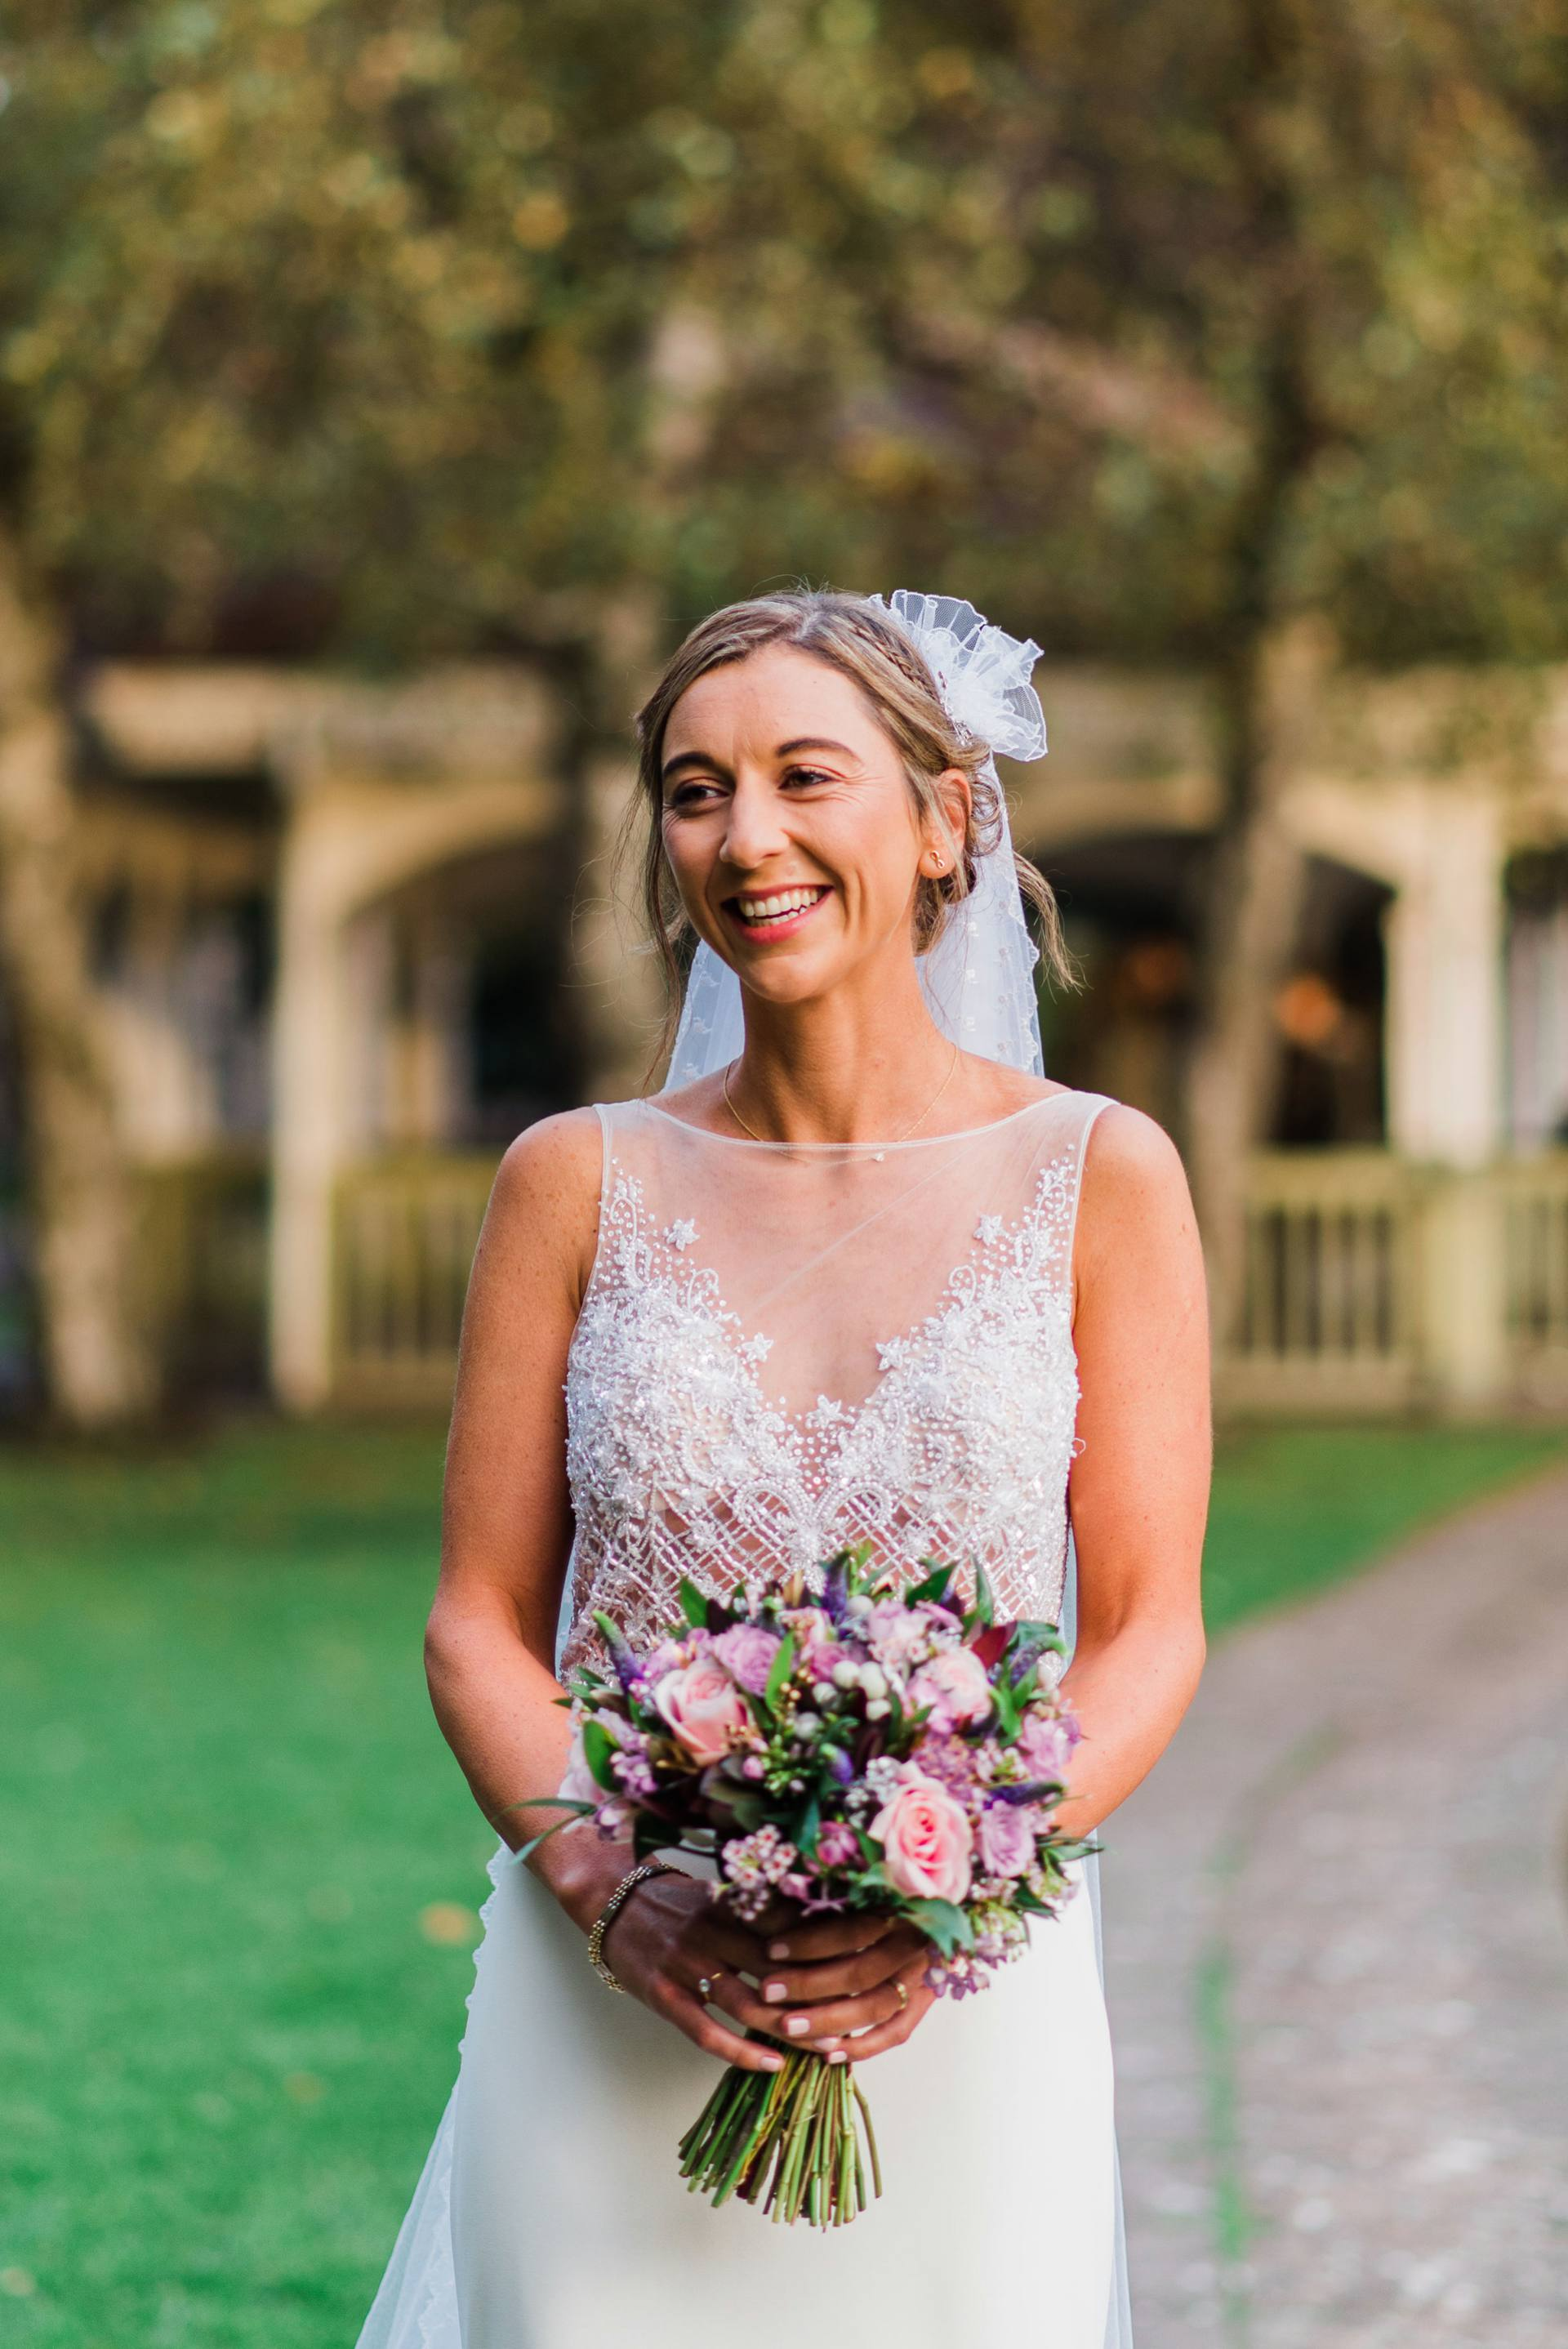 Smiling Bride holding purple flowers